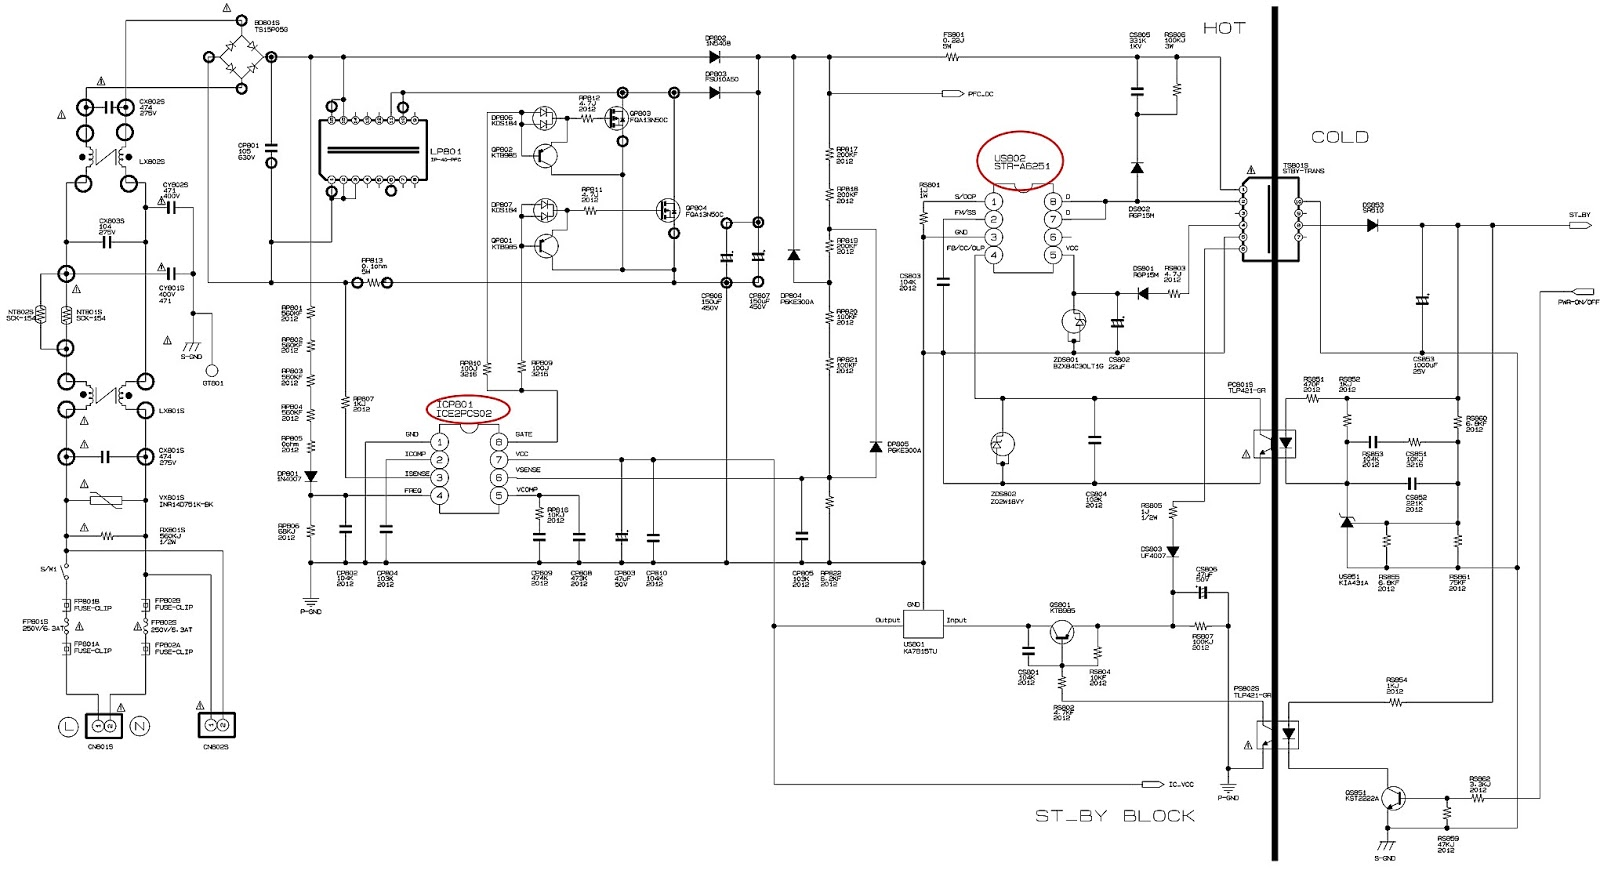 Colorful Smps Pinout Vignette - Electrical Wiring Diagram Ideas ...